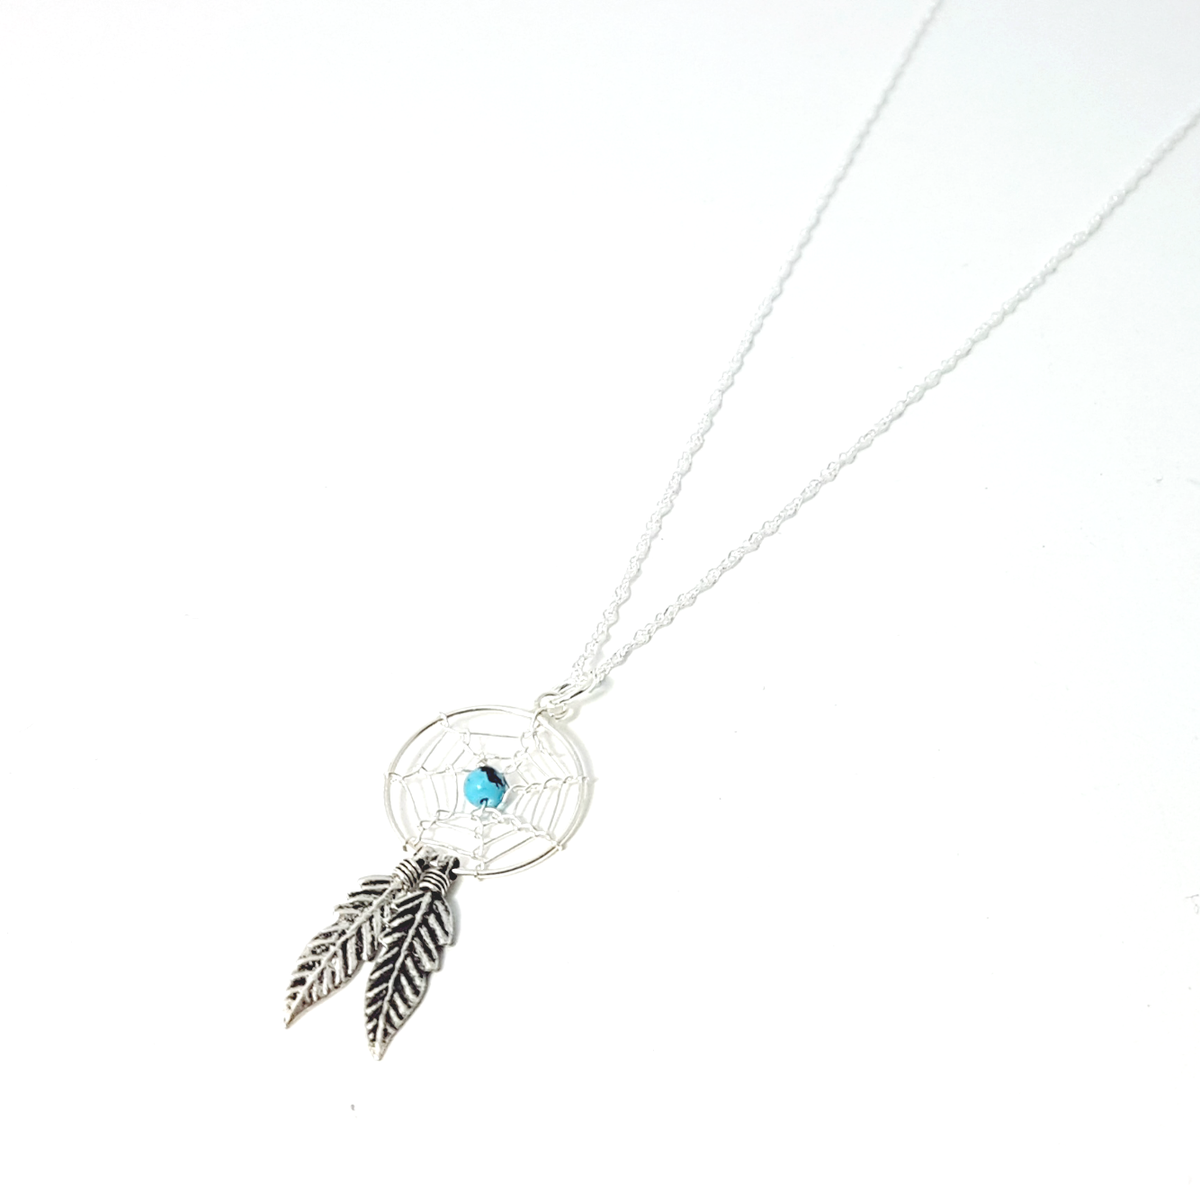 dream necklace dainty product lucky charm hugerect simple catcher dreamcatcher